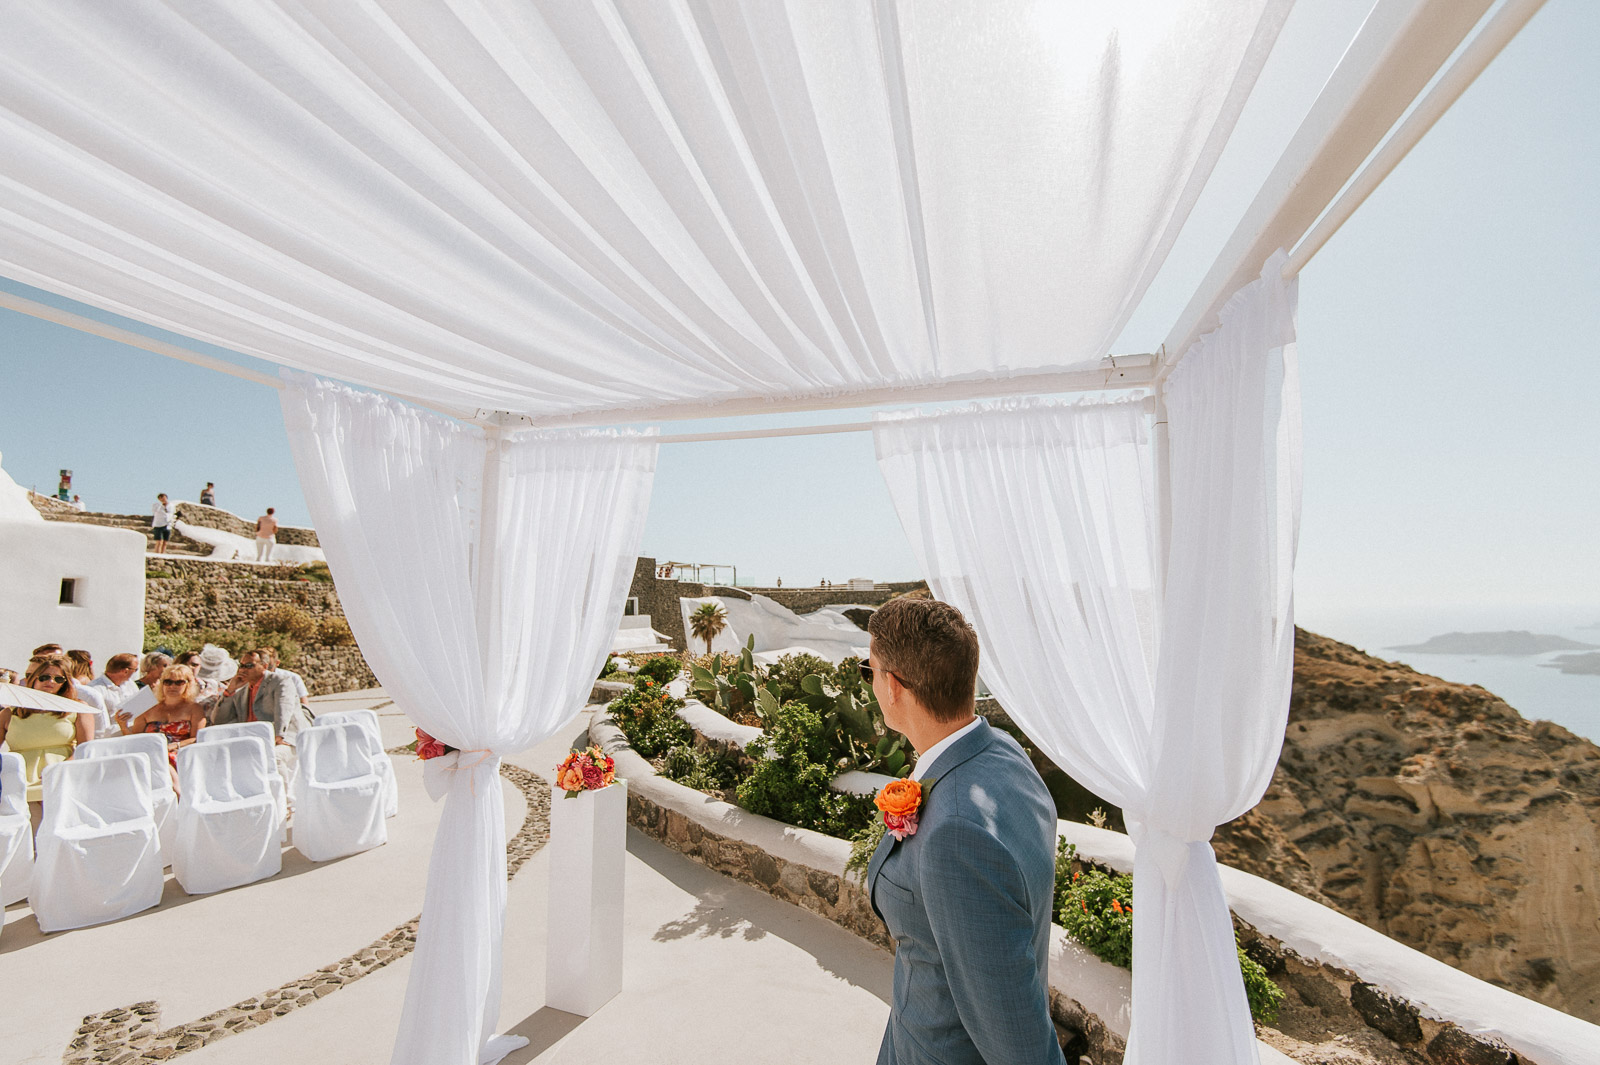 Santorini-Wedding-Photographer-Greece-Destination-Weddings-Mait-Juriado-M&J-Studios-052